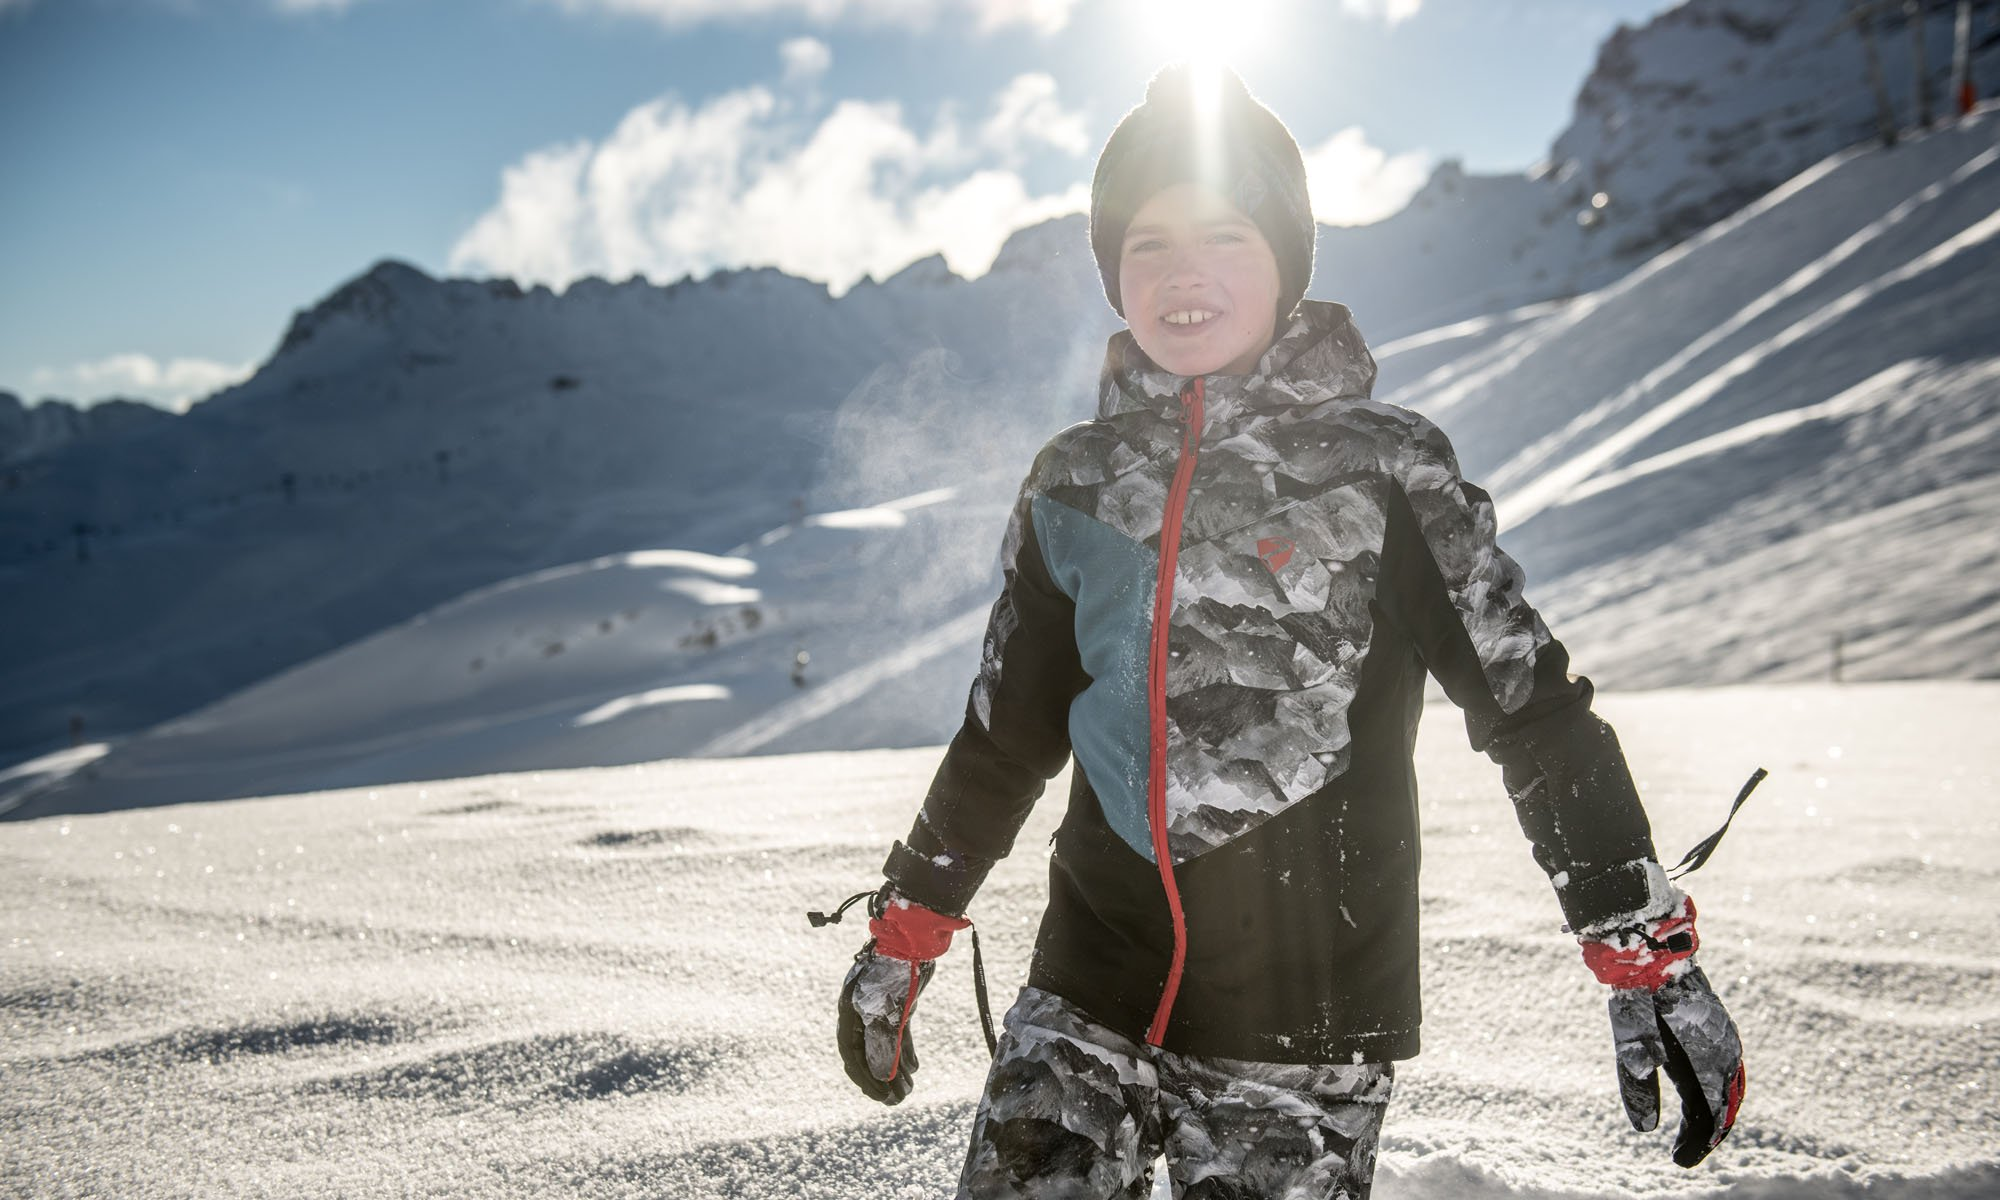 A young boy in a camouflage ski outfit.